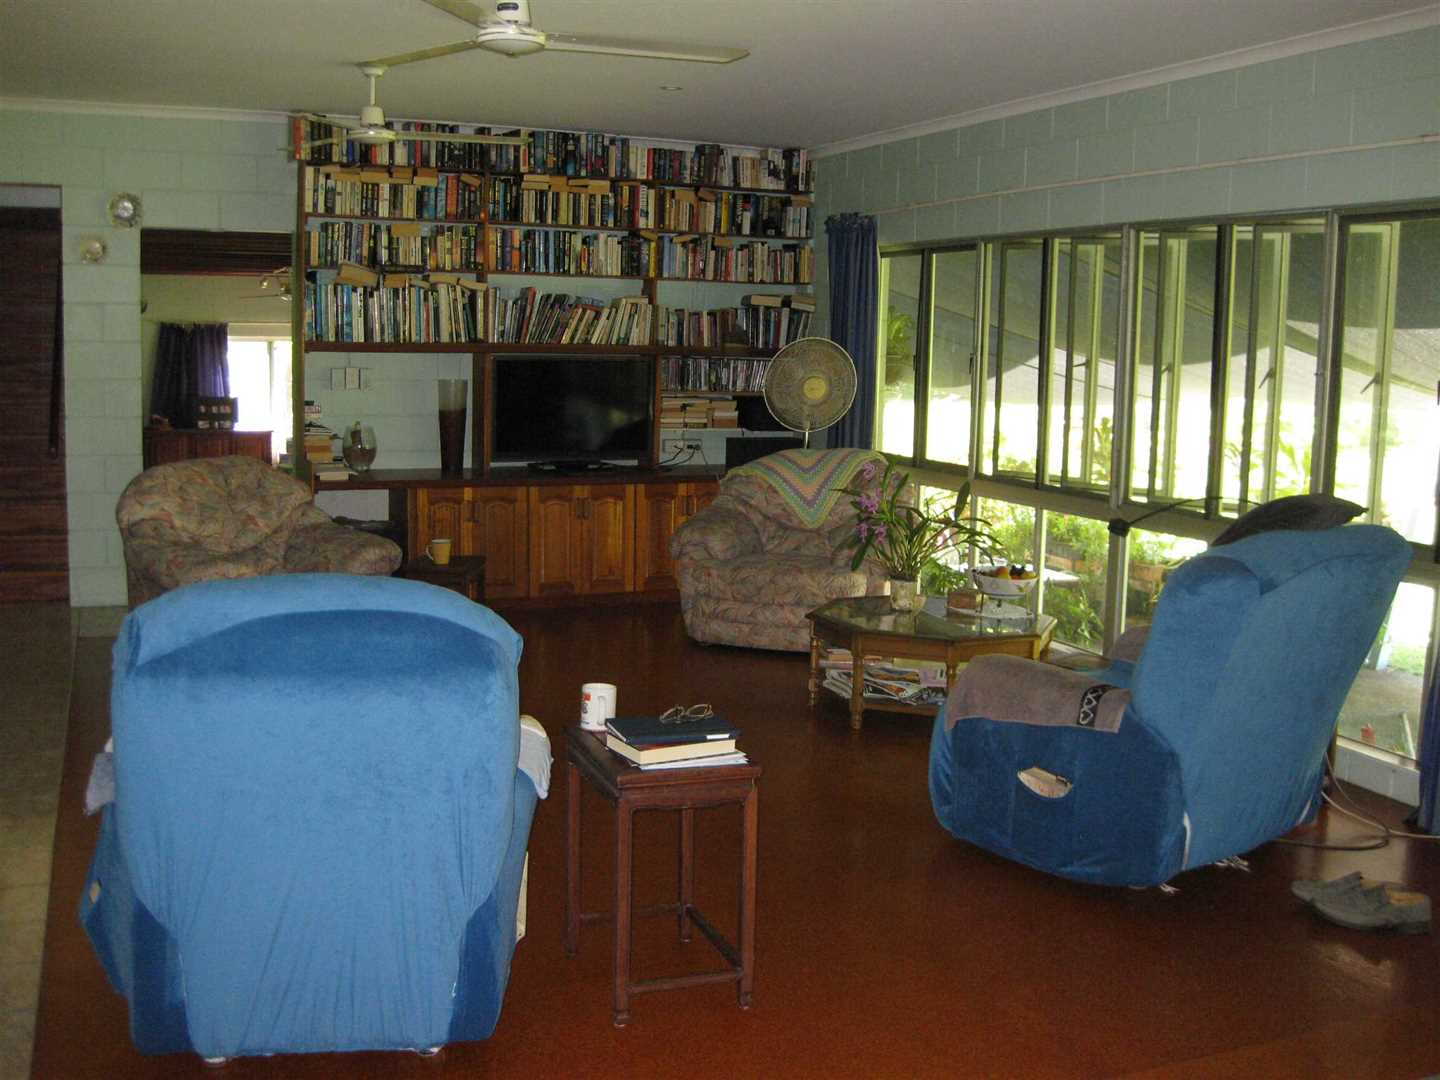 Inside view of part of home showing part of the lounge